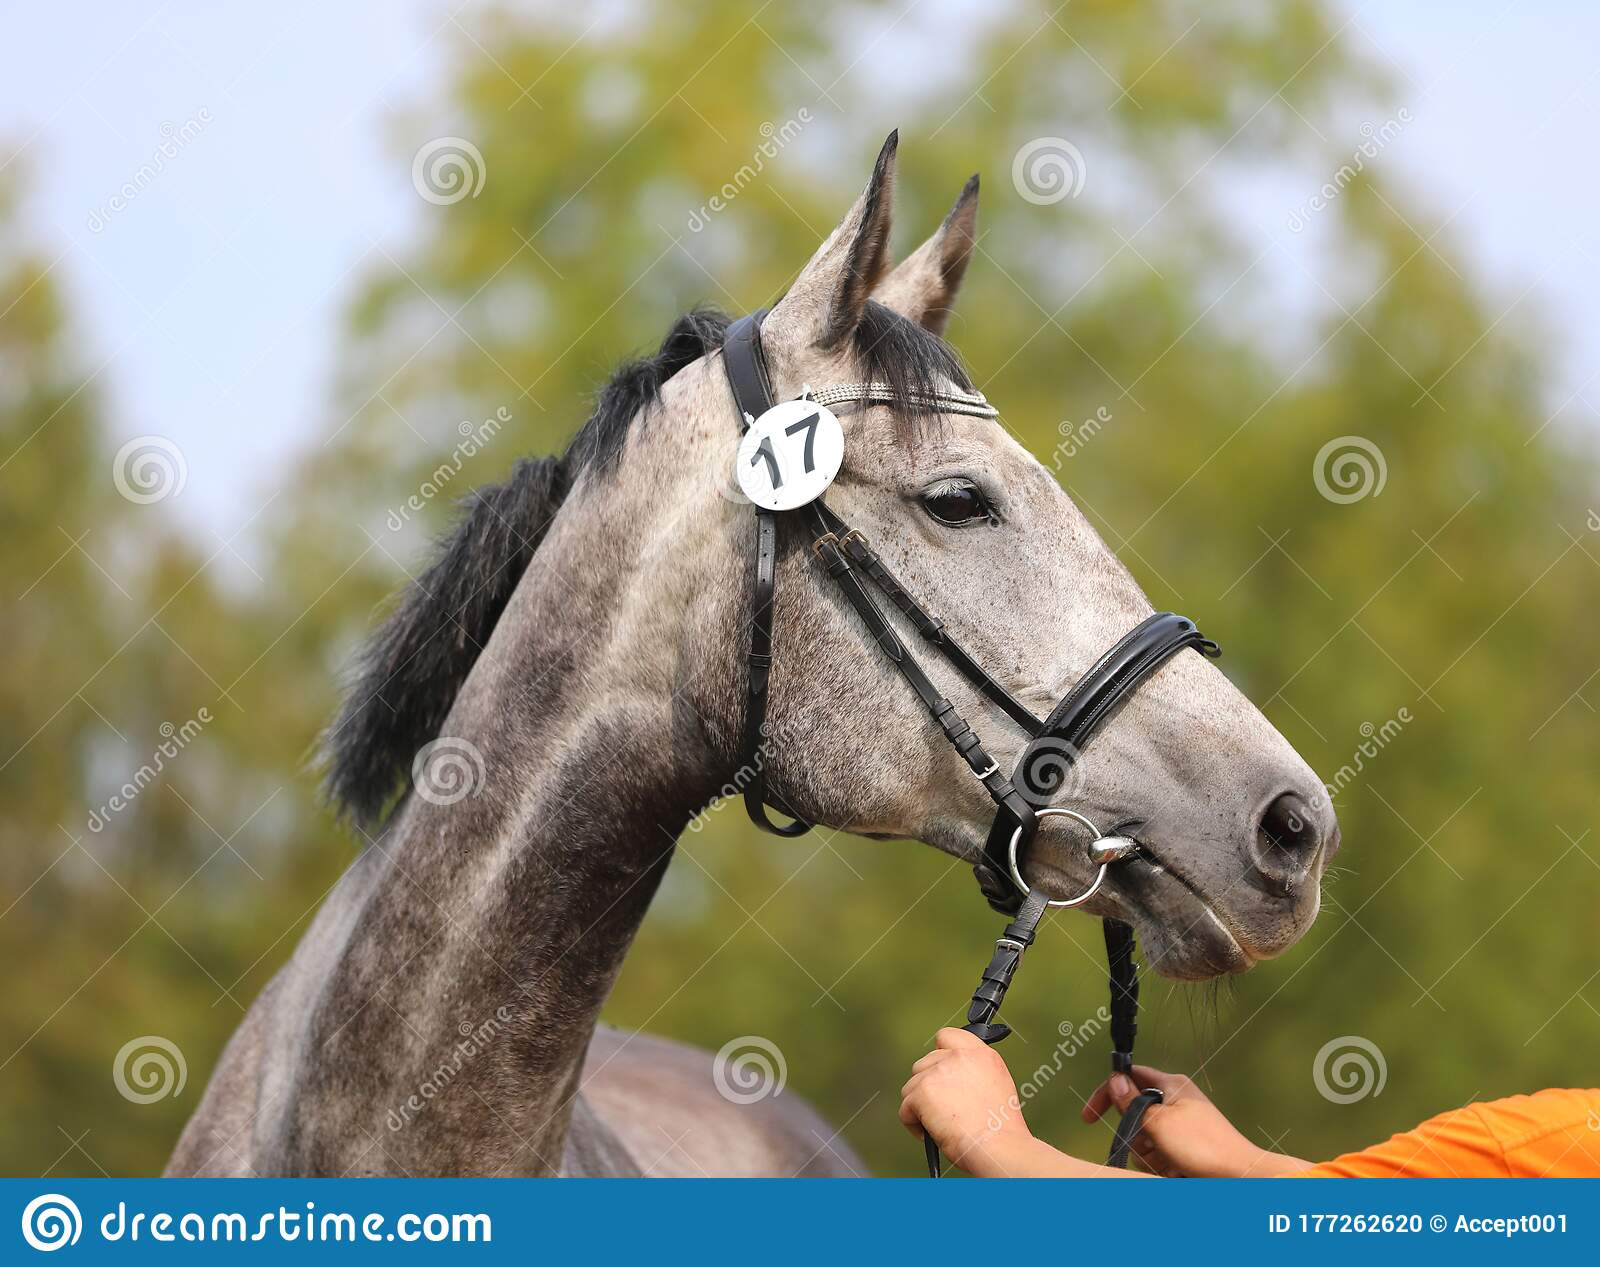 Head Of A Beautiful Thoroughbred Mare Stock Photo Image Of Barn Horse 177262620